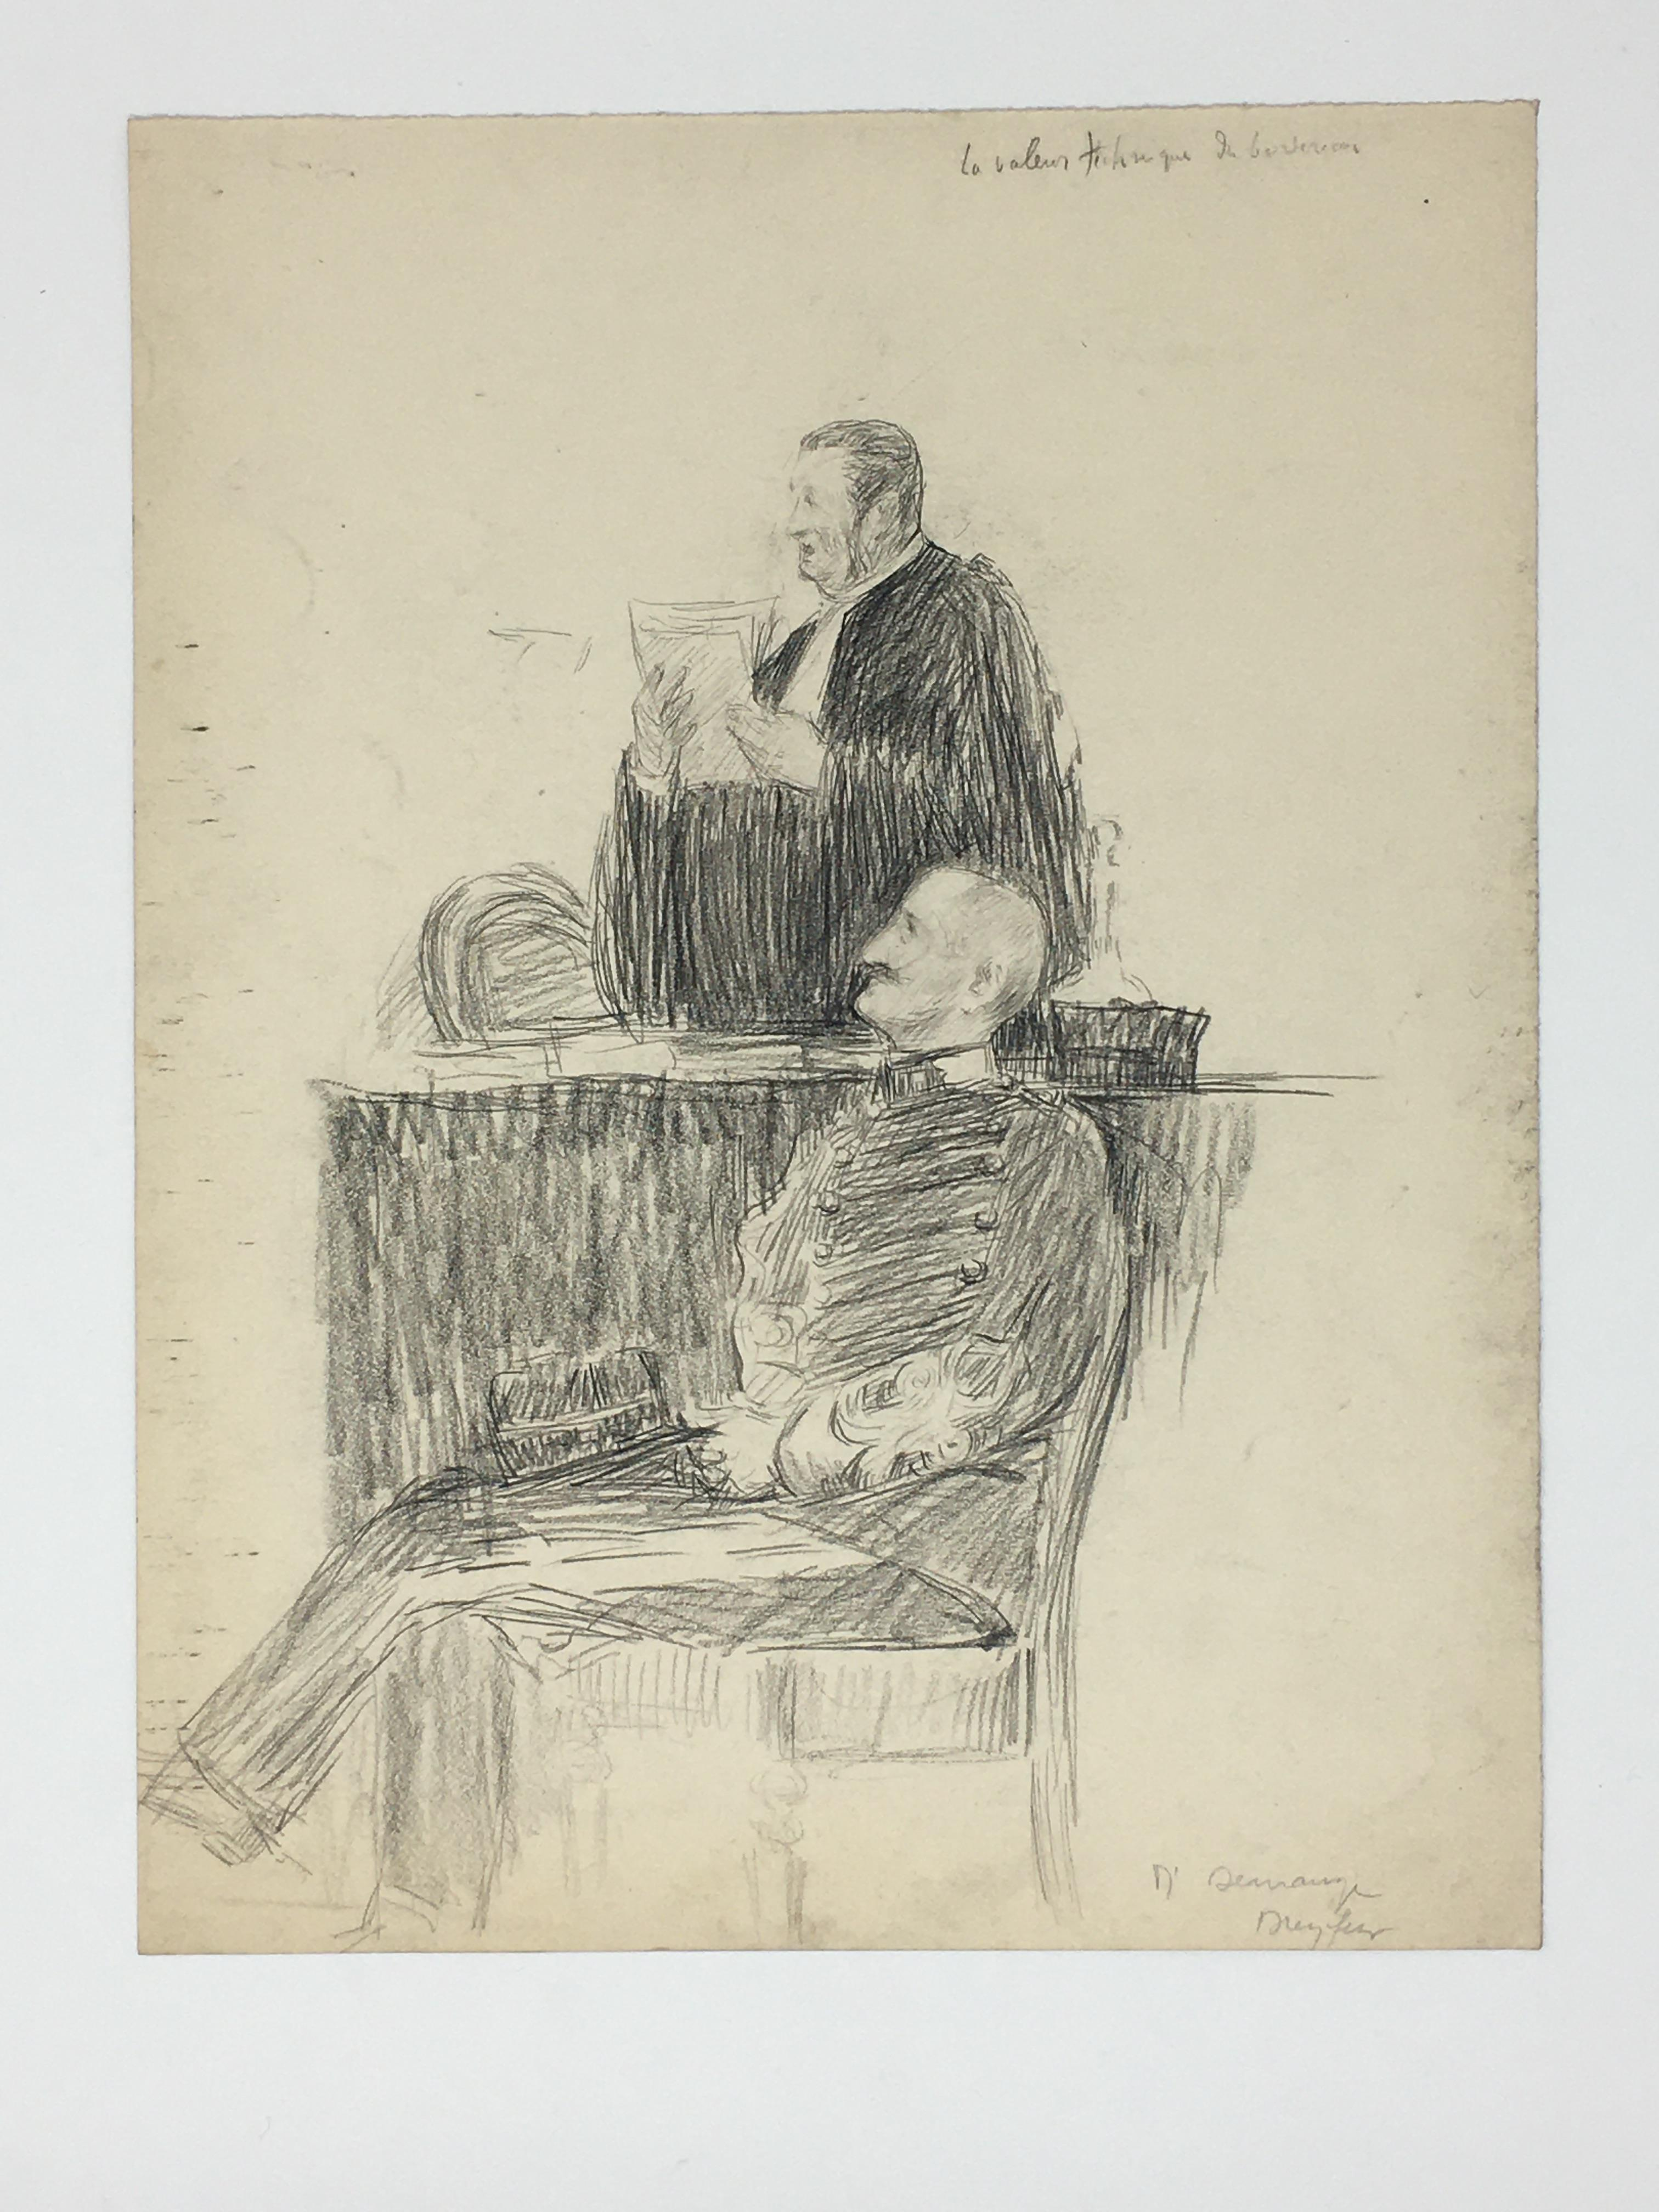 J'Accuse Newspaper, Emile Zola Quote, Signed Dreyfus Portrait, Rare Trial Drawings & Schwartzkoppen - Image 20 of 74